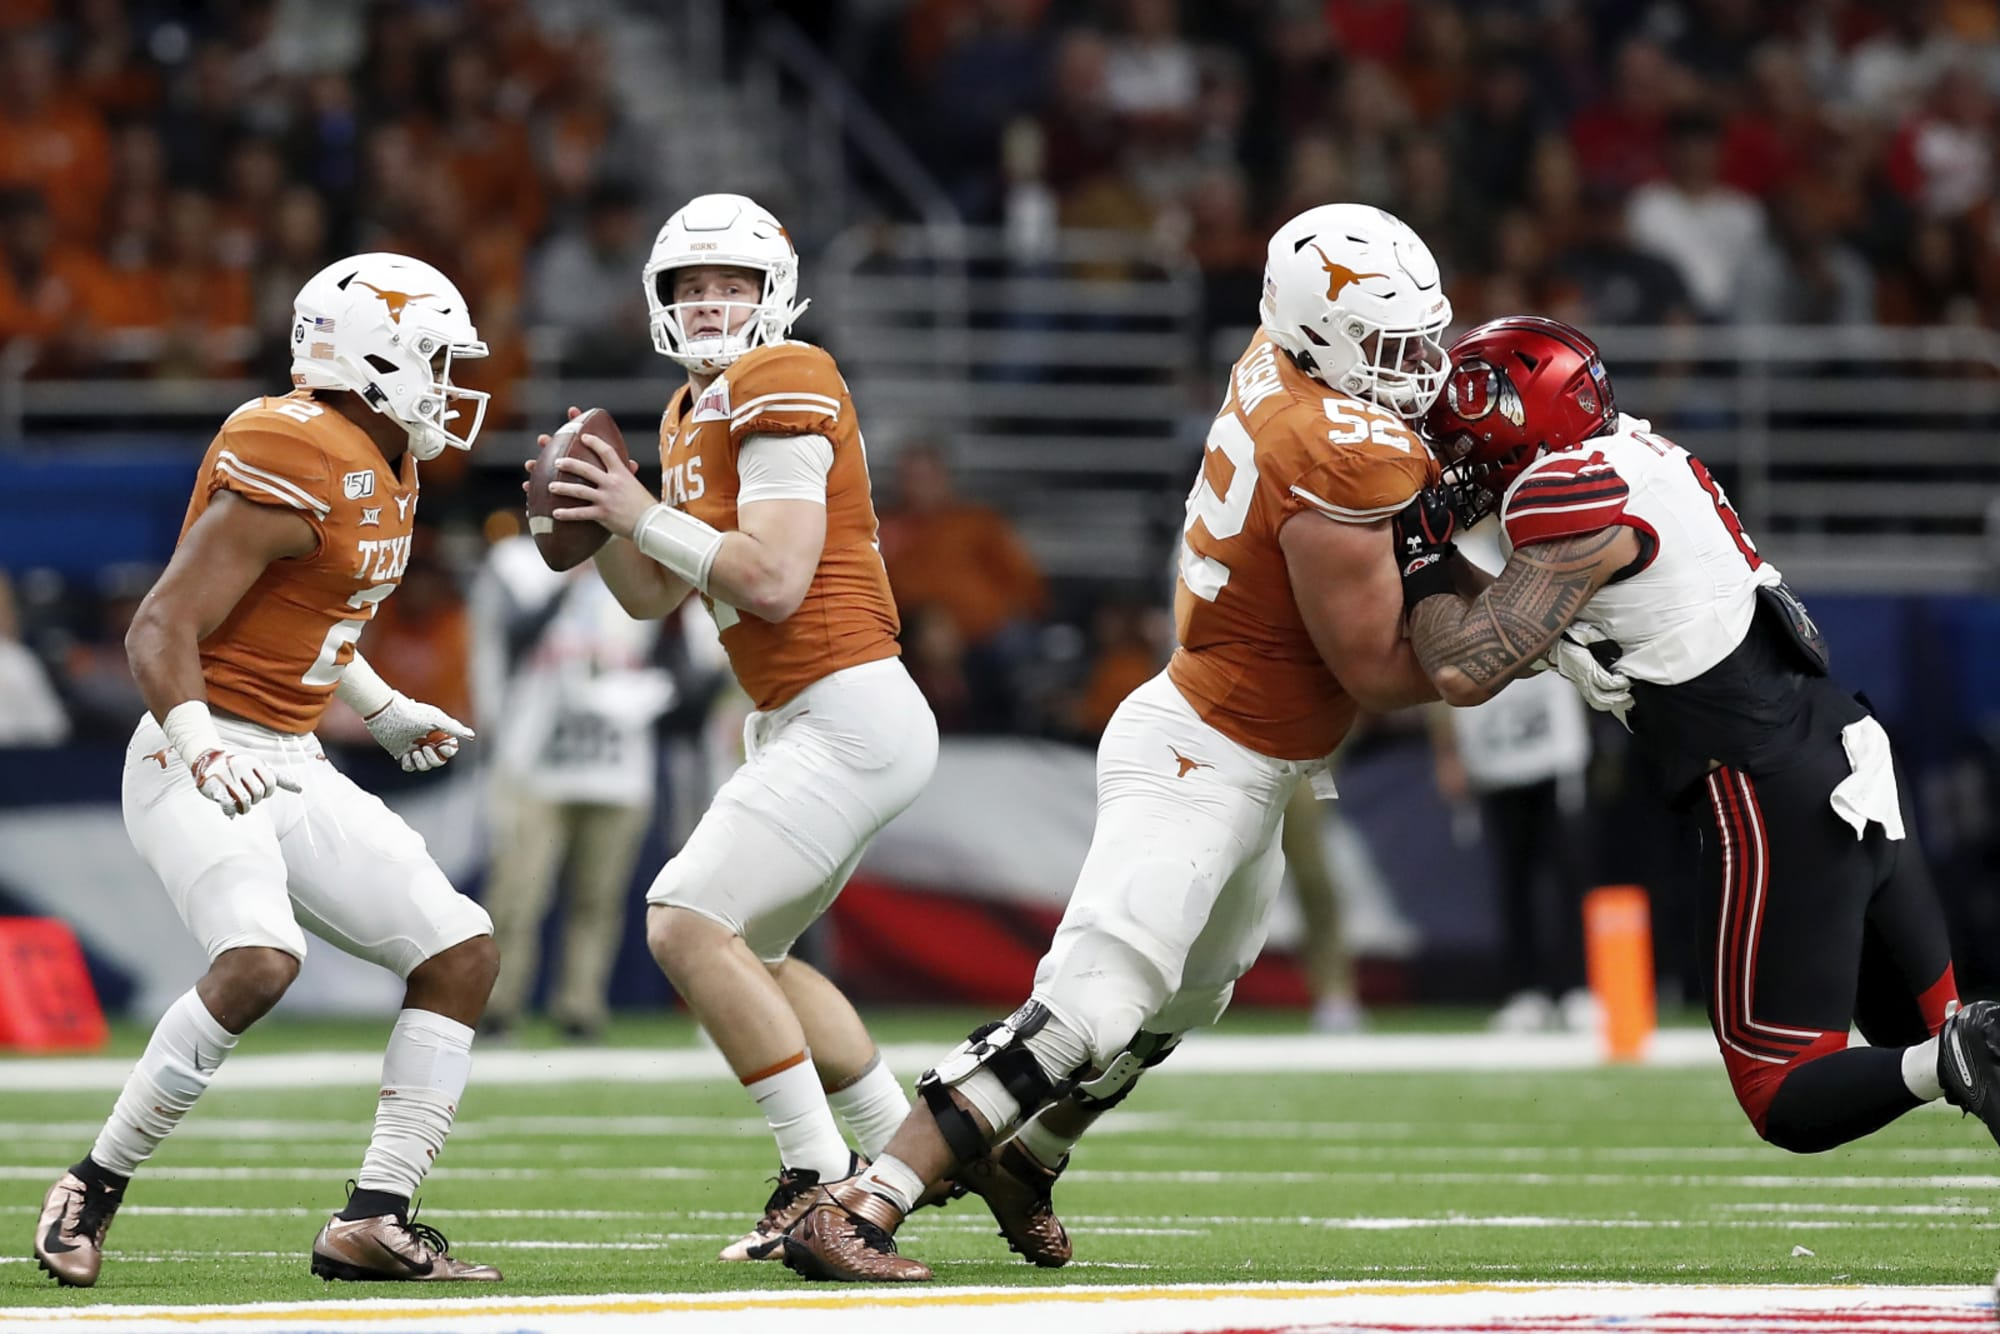 Texas Football What Record Cbs Sports Projected For Longhorns In 2020